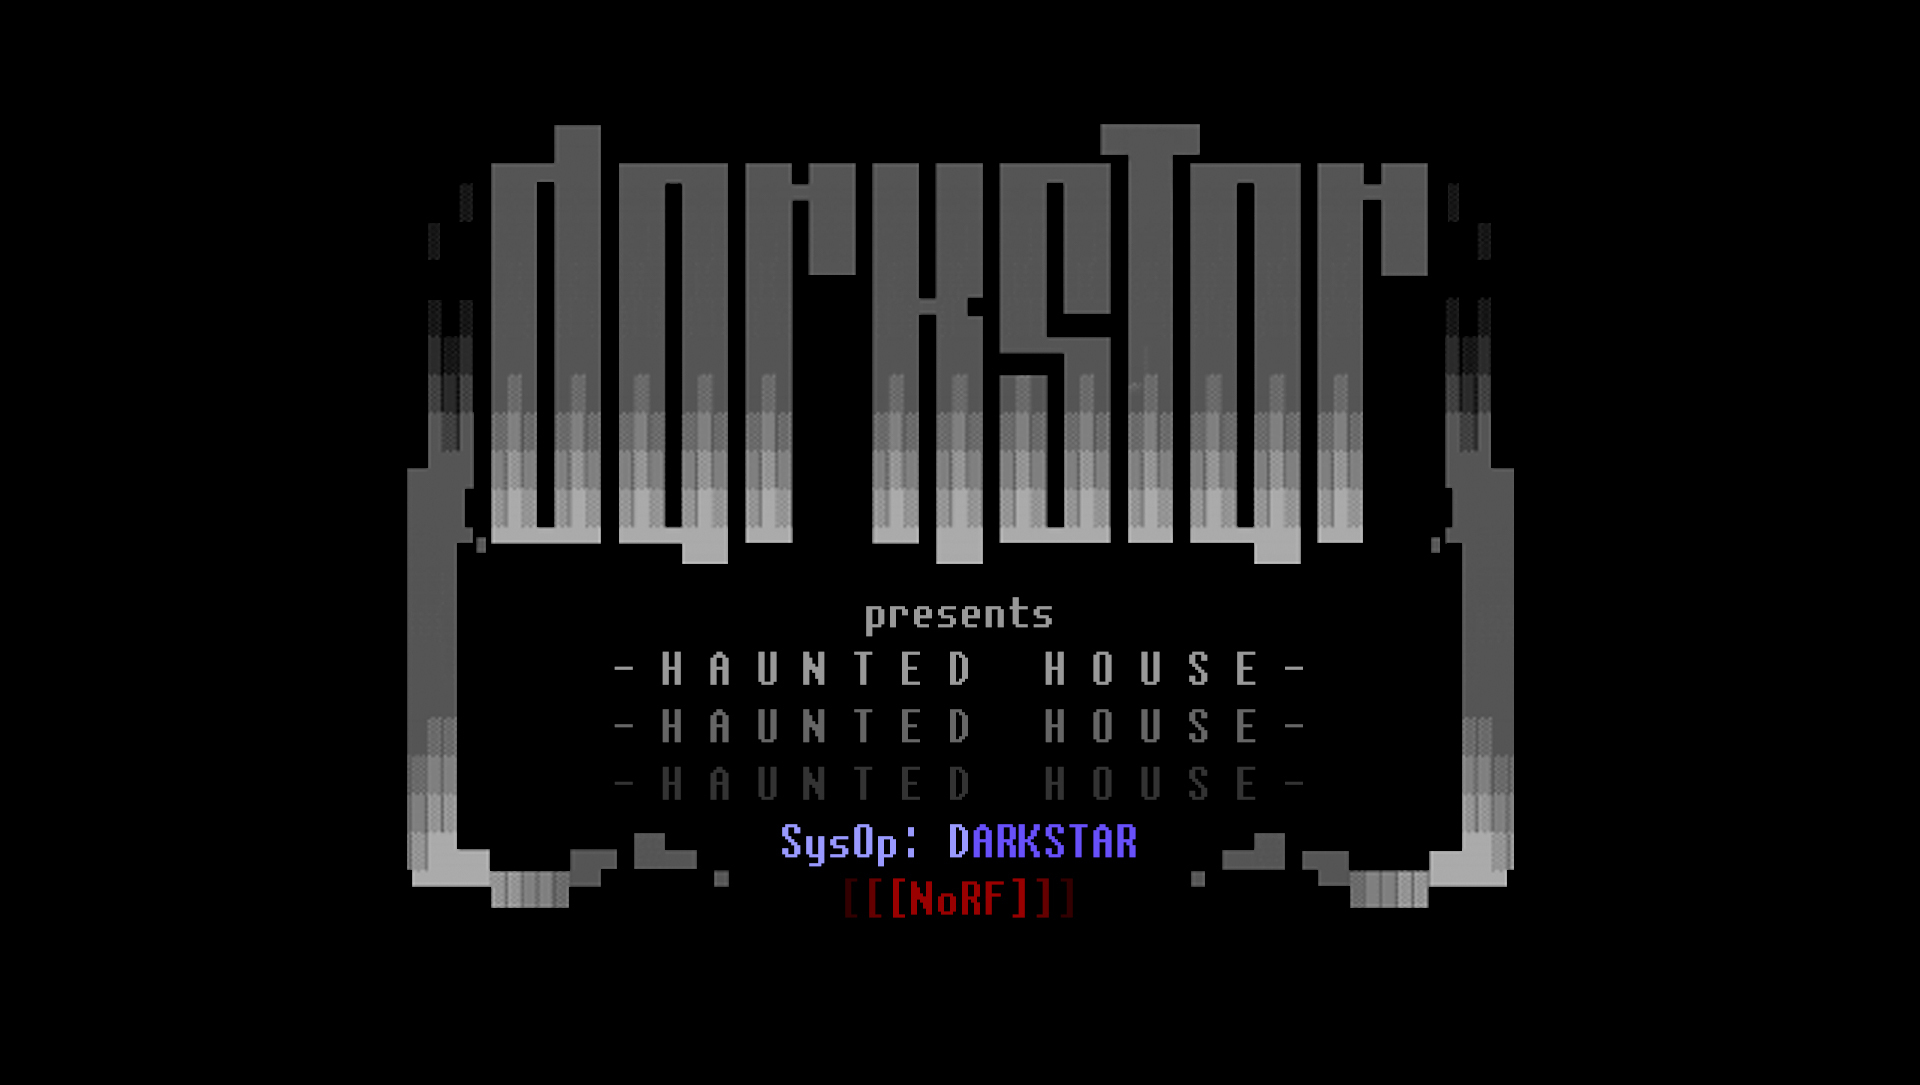 Darkstar Haunted House Library